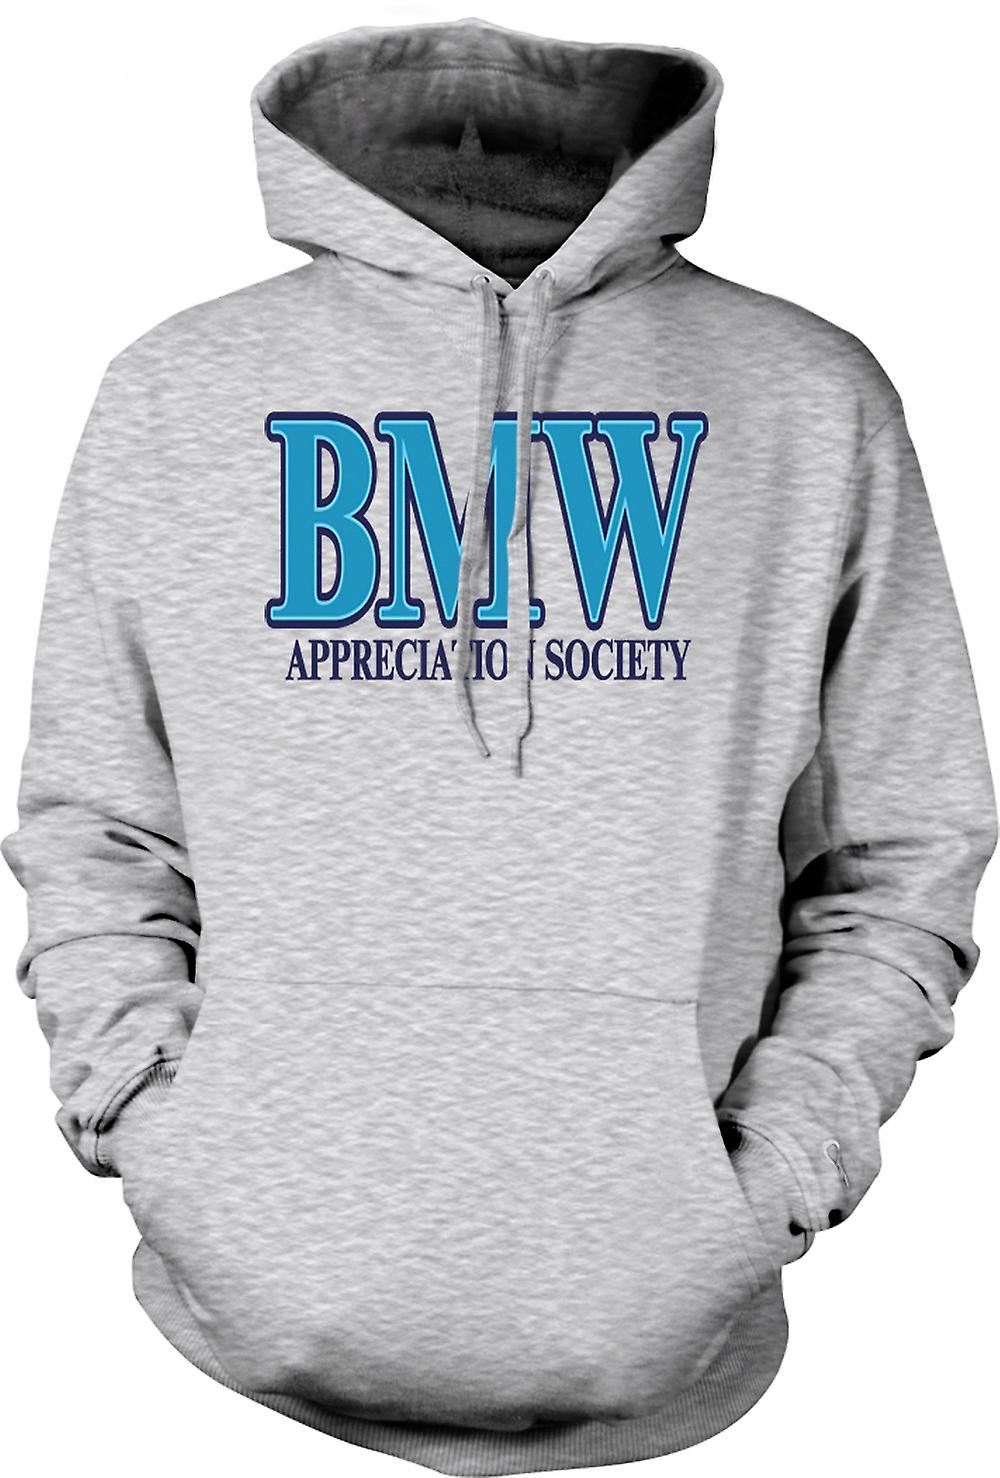 Mens Hoodie - BMW Appreciation Society